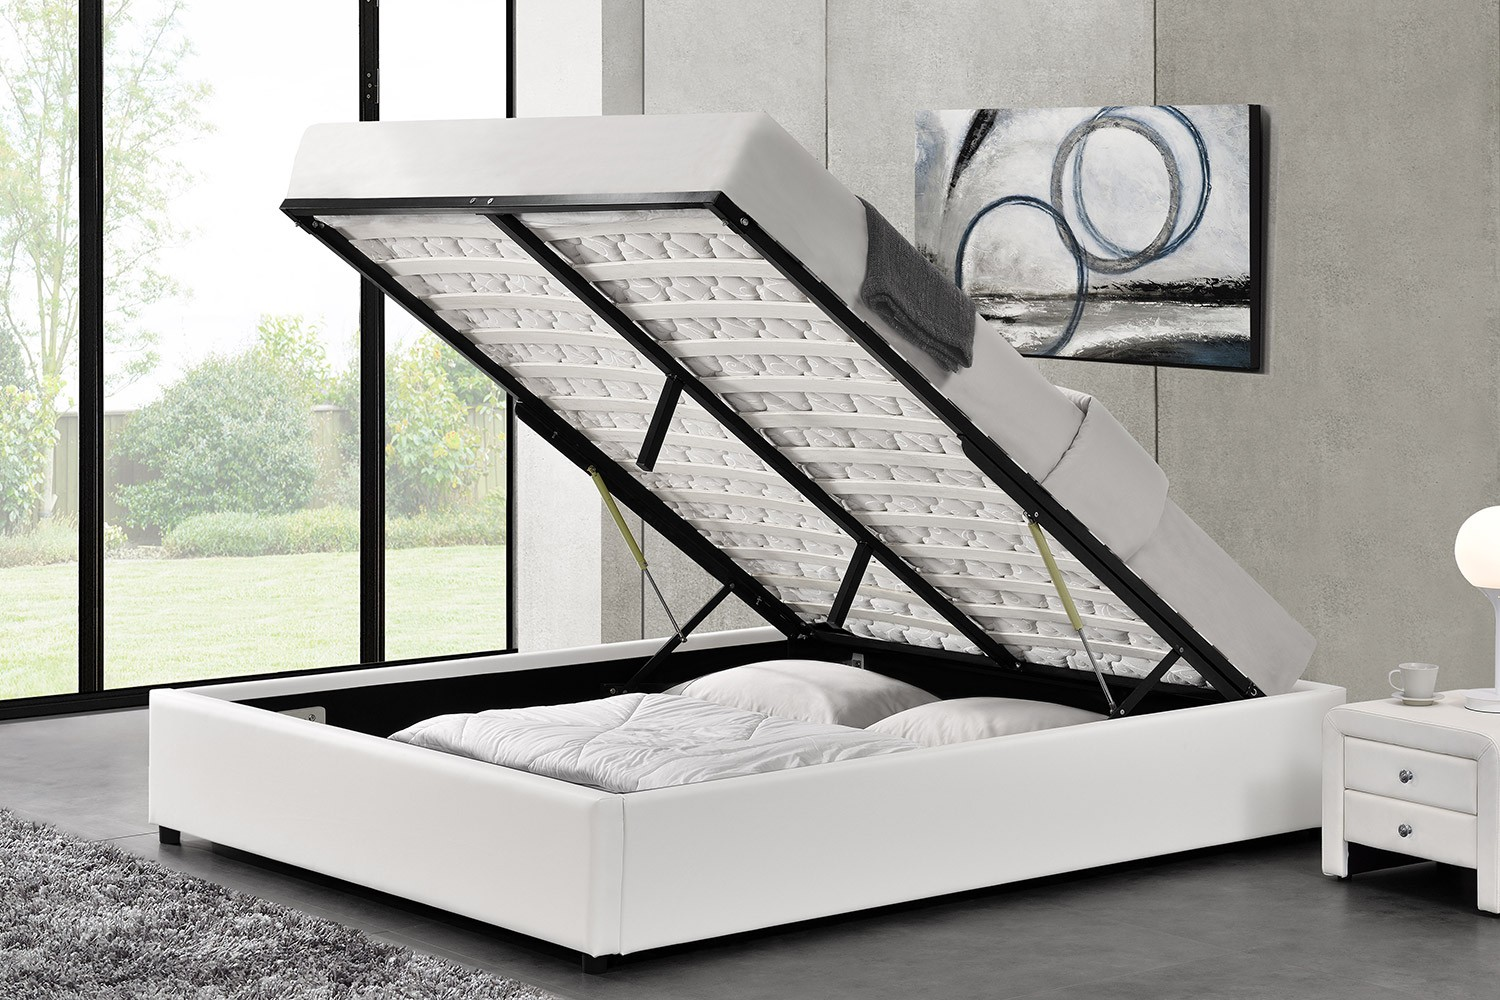 lit oakley structure de lit blanc avec coffre de. Black Bedroom Furniture Sets. Home Design Ideas